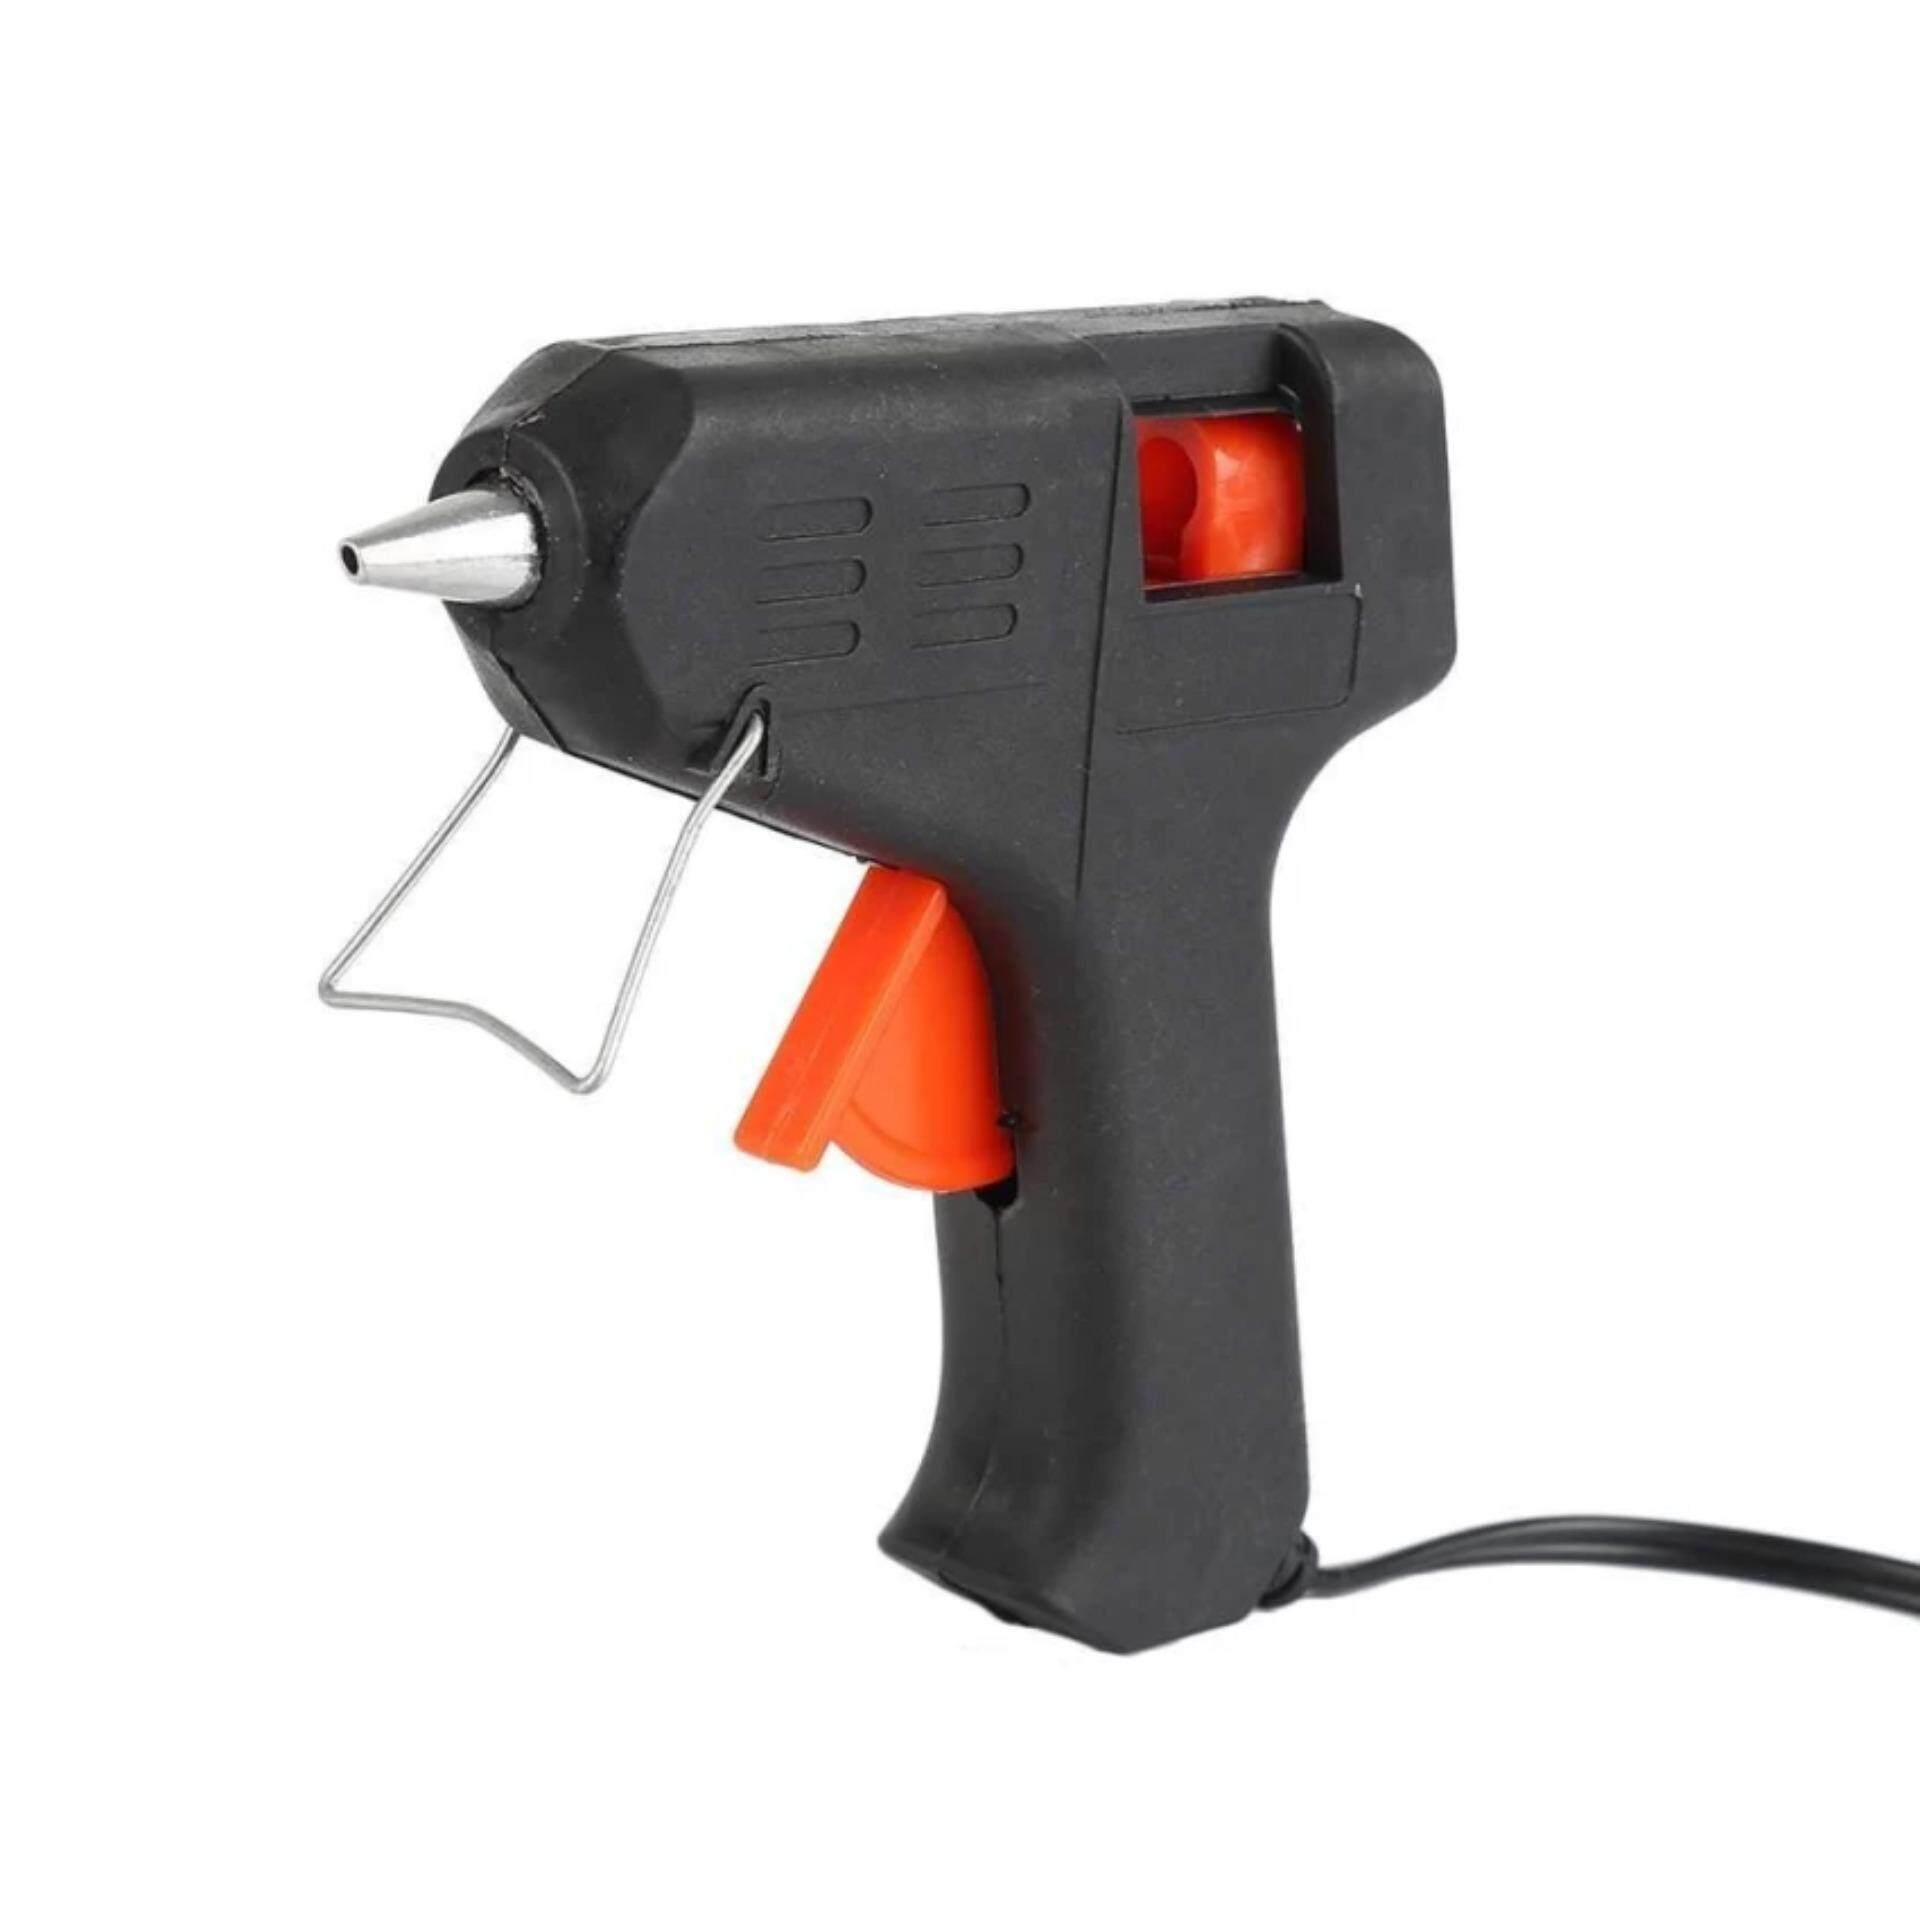 Mini 100-240V 20W Professional Hot Glue Gun - Heating Craft Repair Tool